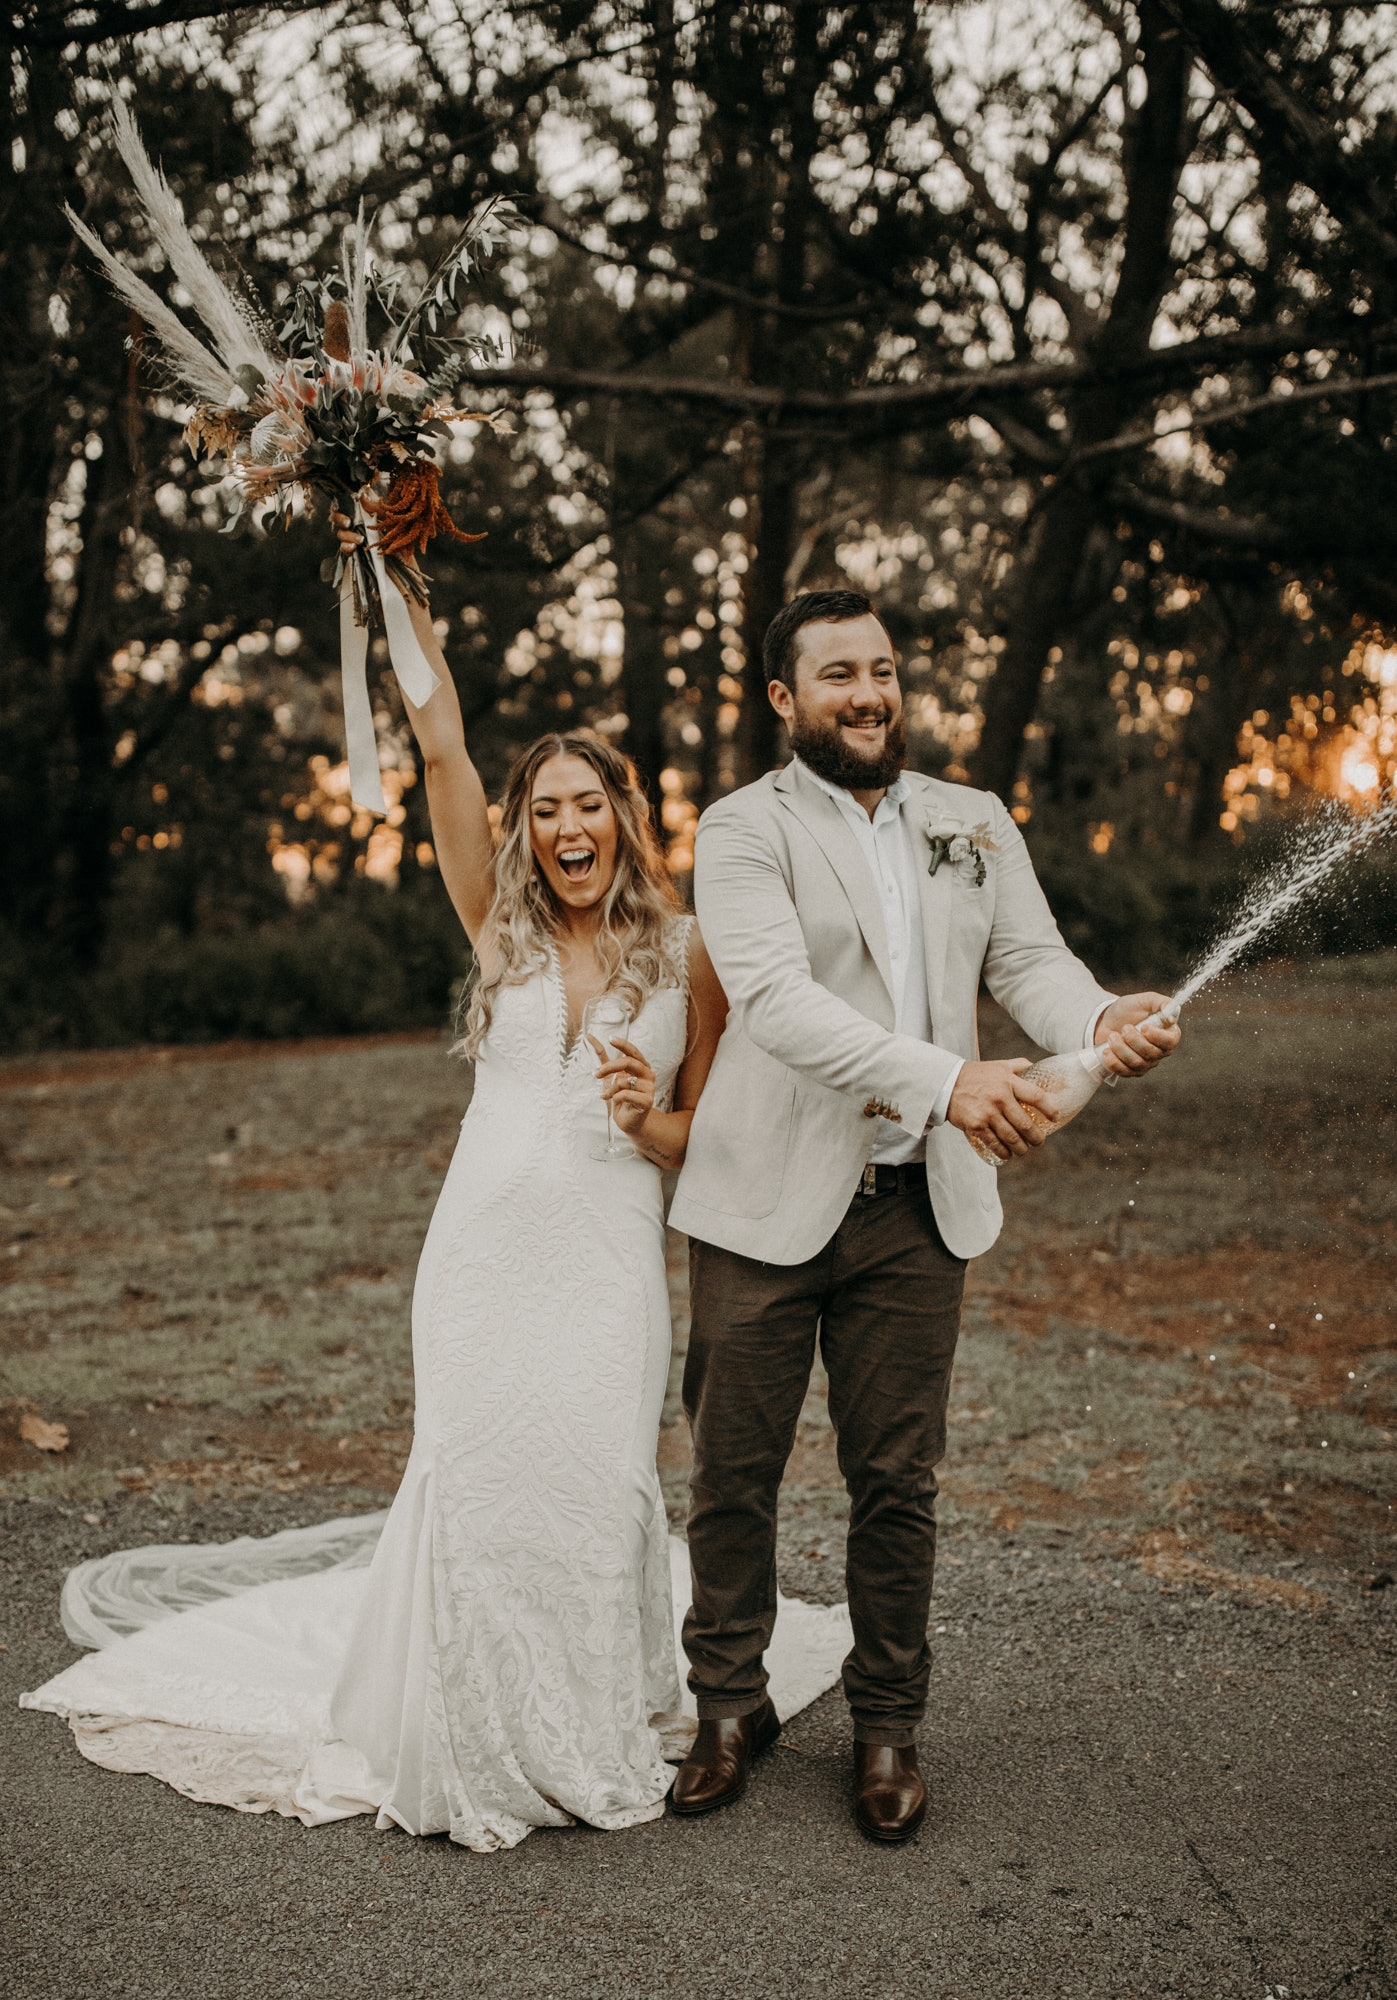 Bride and groom popping a bottle of champagne